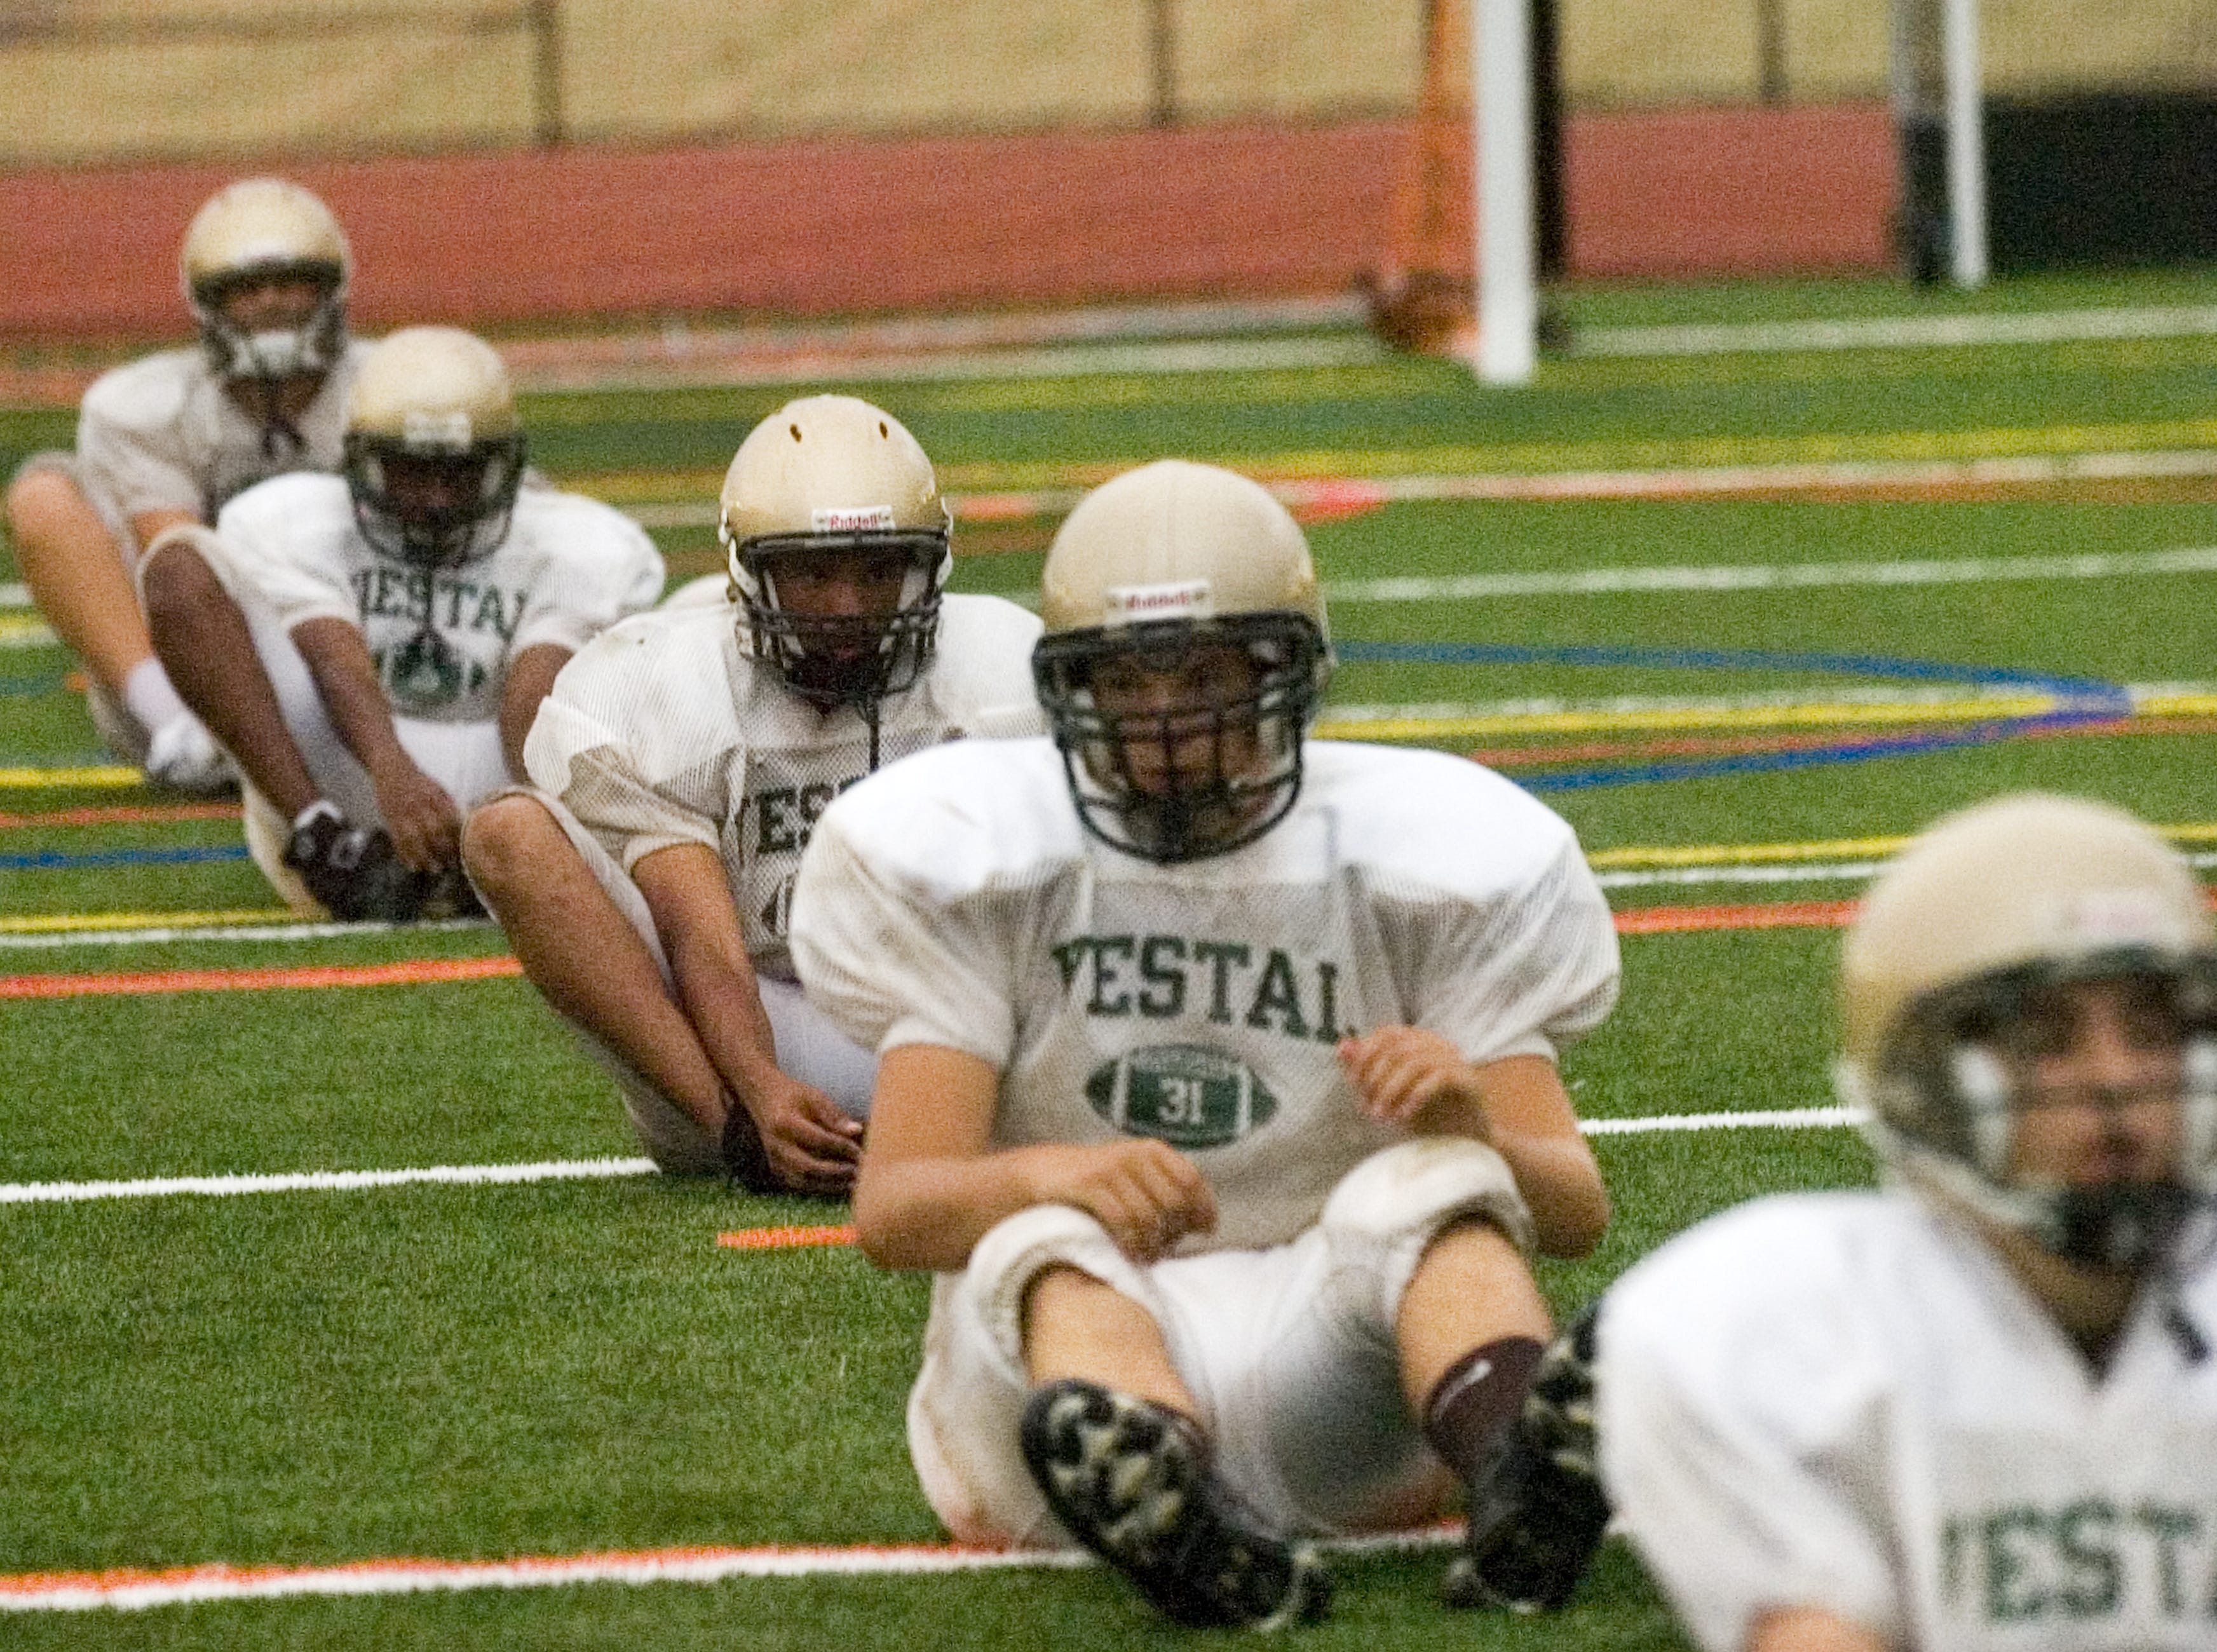 In 2007, Vestal High School varsity football players stretch during their first practice at Dick Hoover Stadium in Vestal.